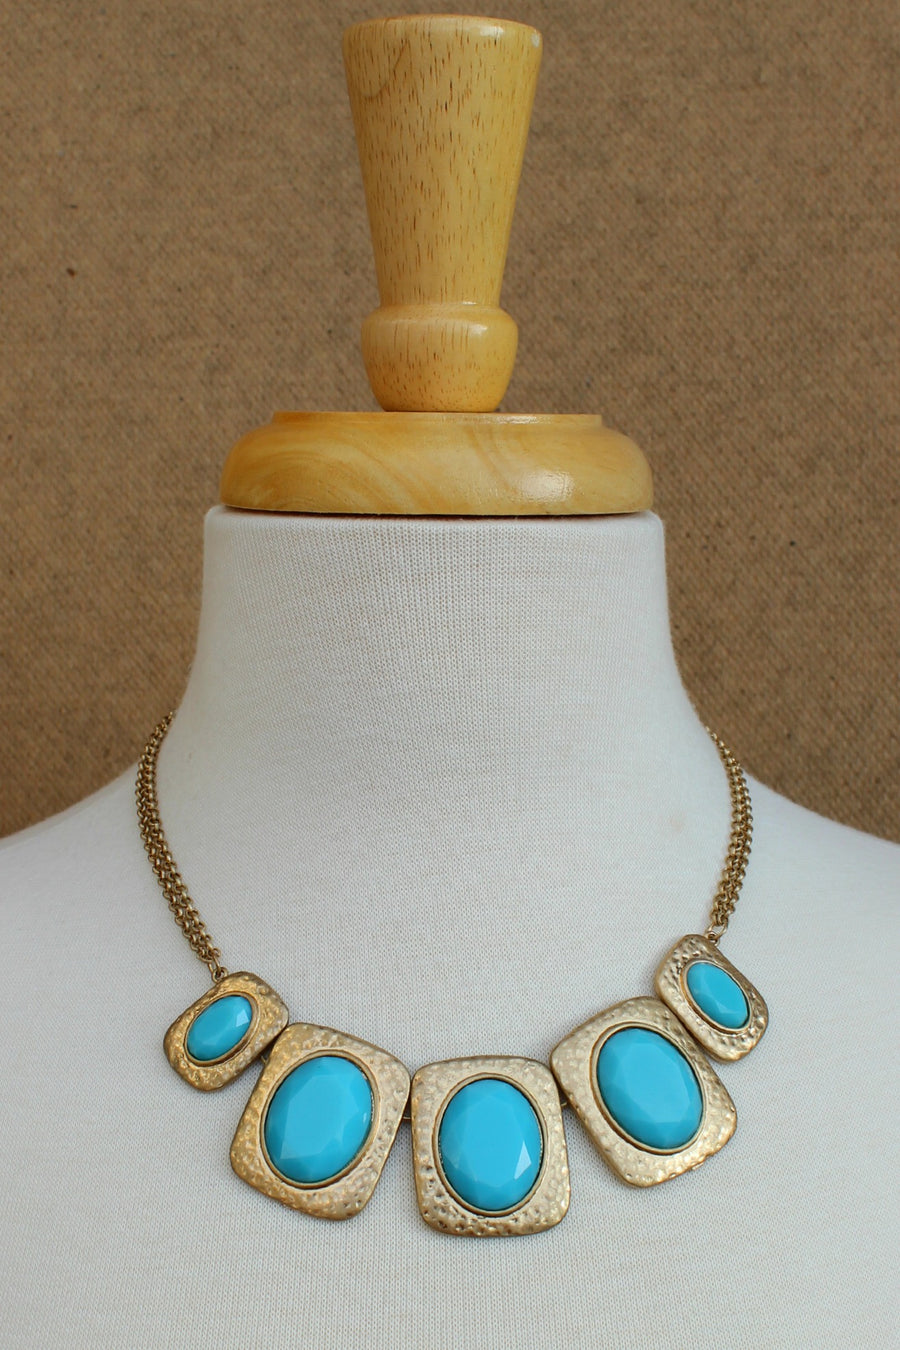 Inlaid Oval Necklace - Baby Blue